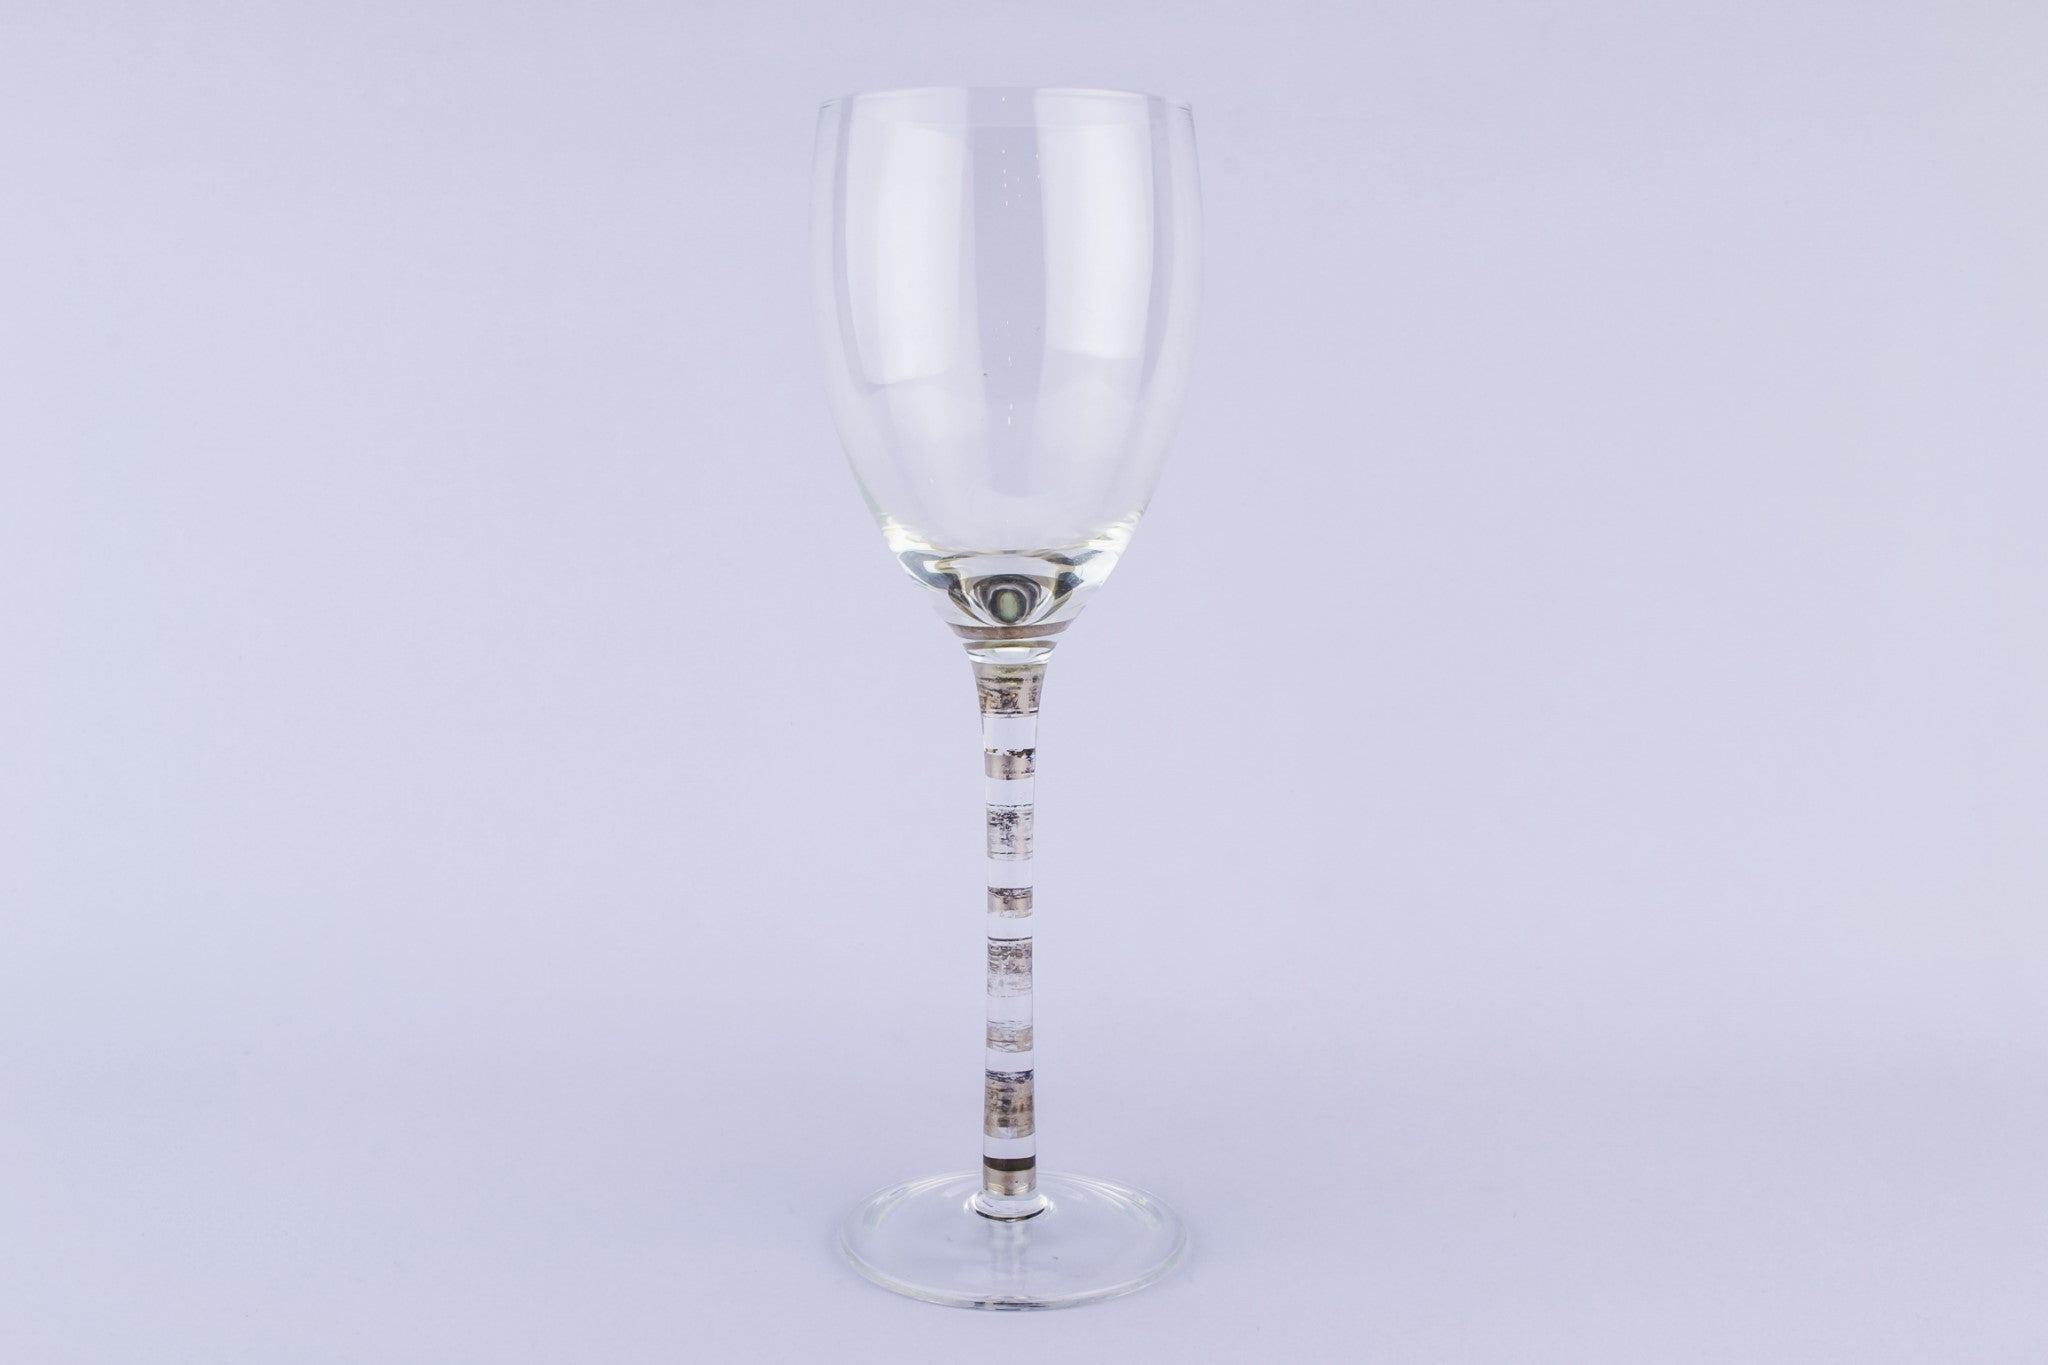 4 silvered stem wine glasses